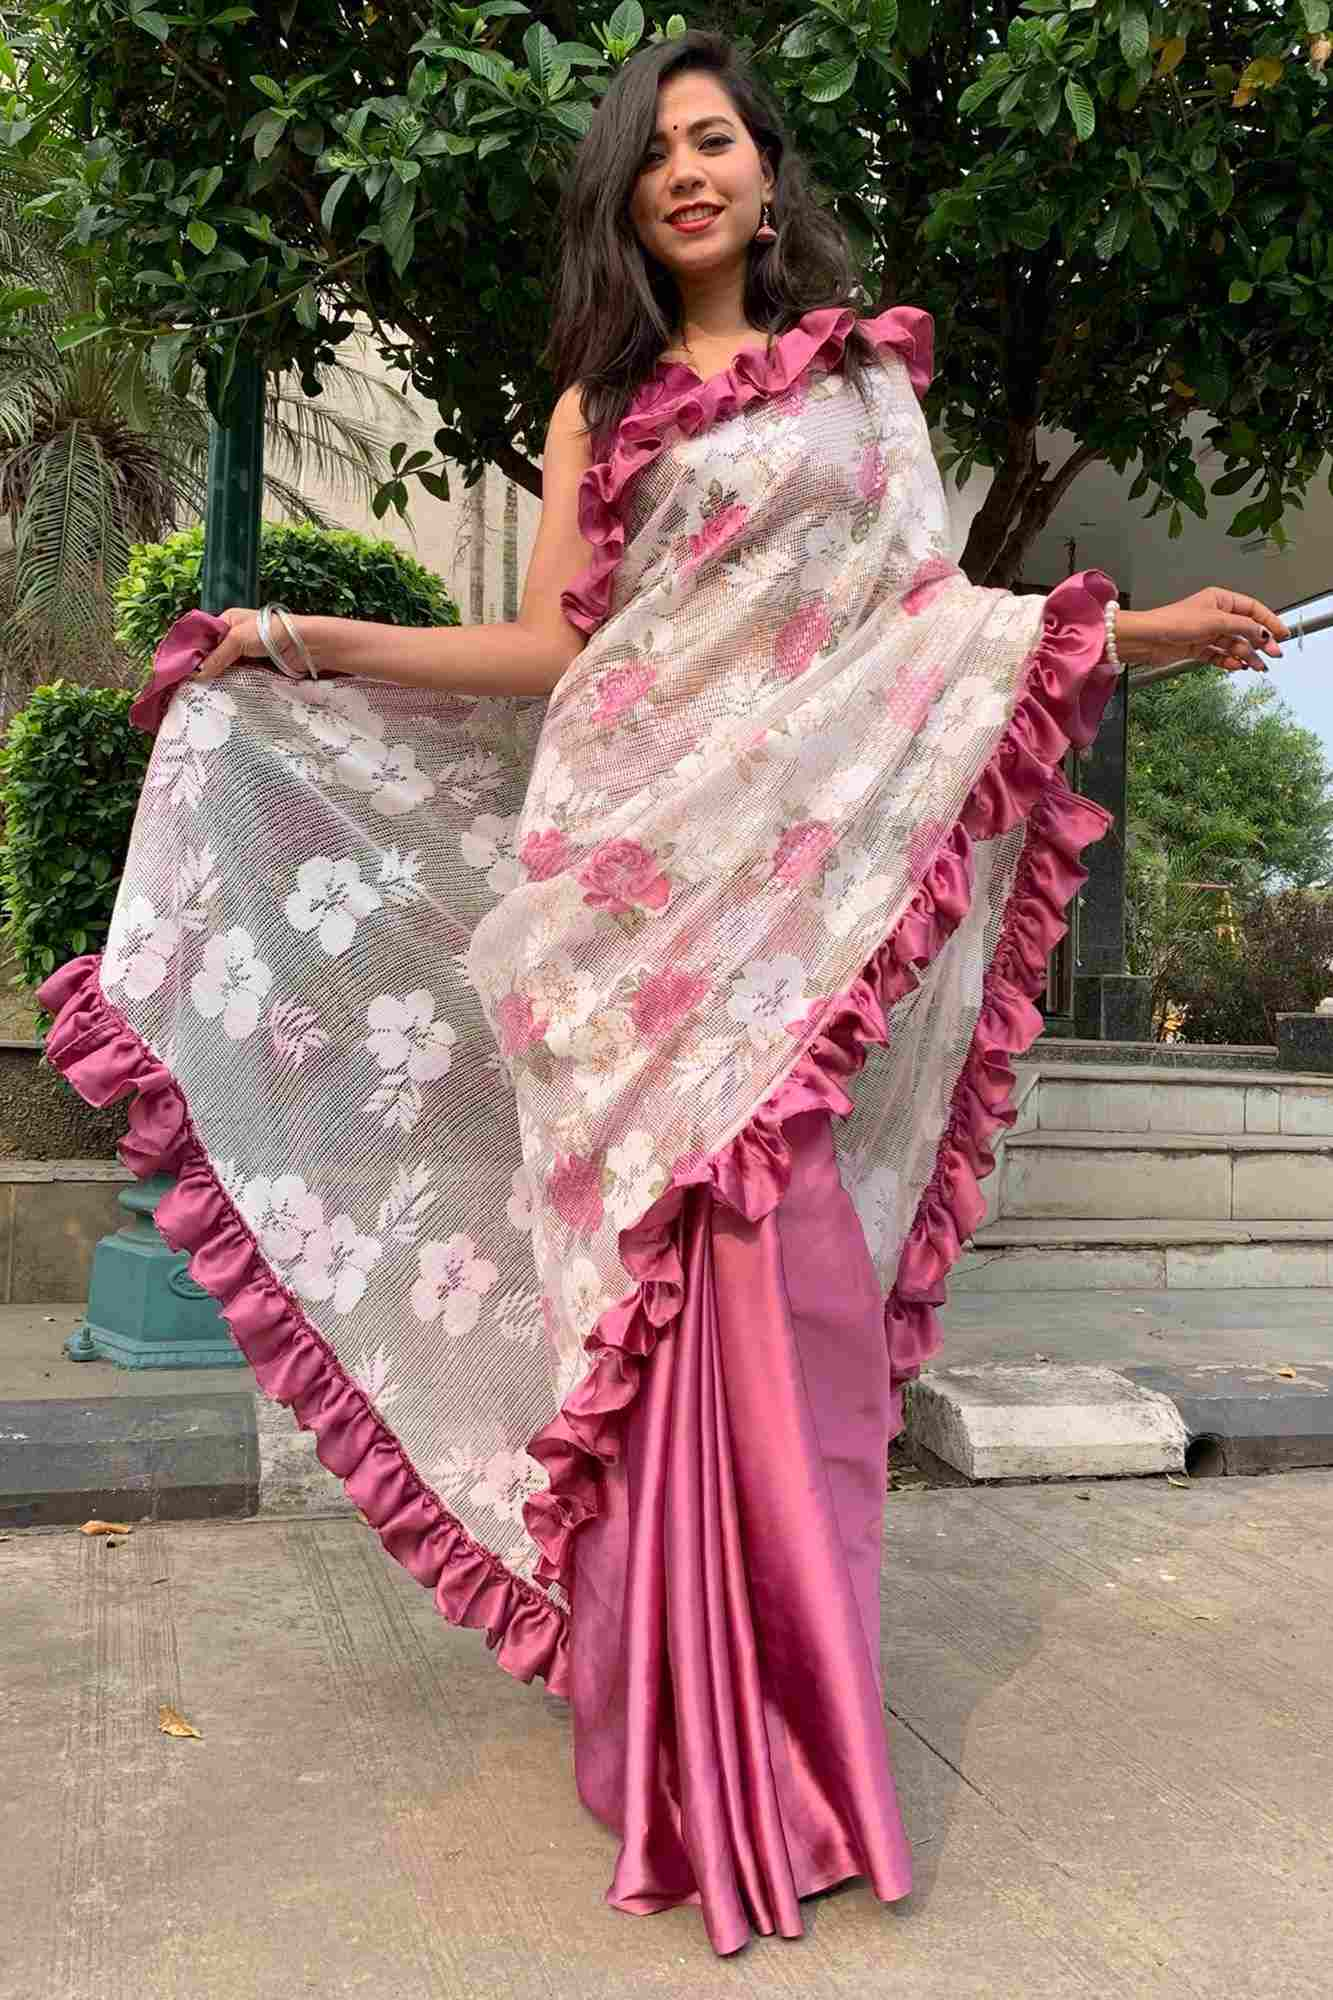 Designer ruffle with sequin net & satin silk wrap in 1 minute saree